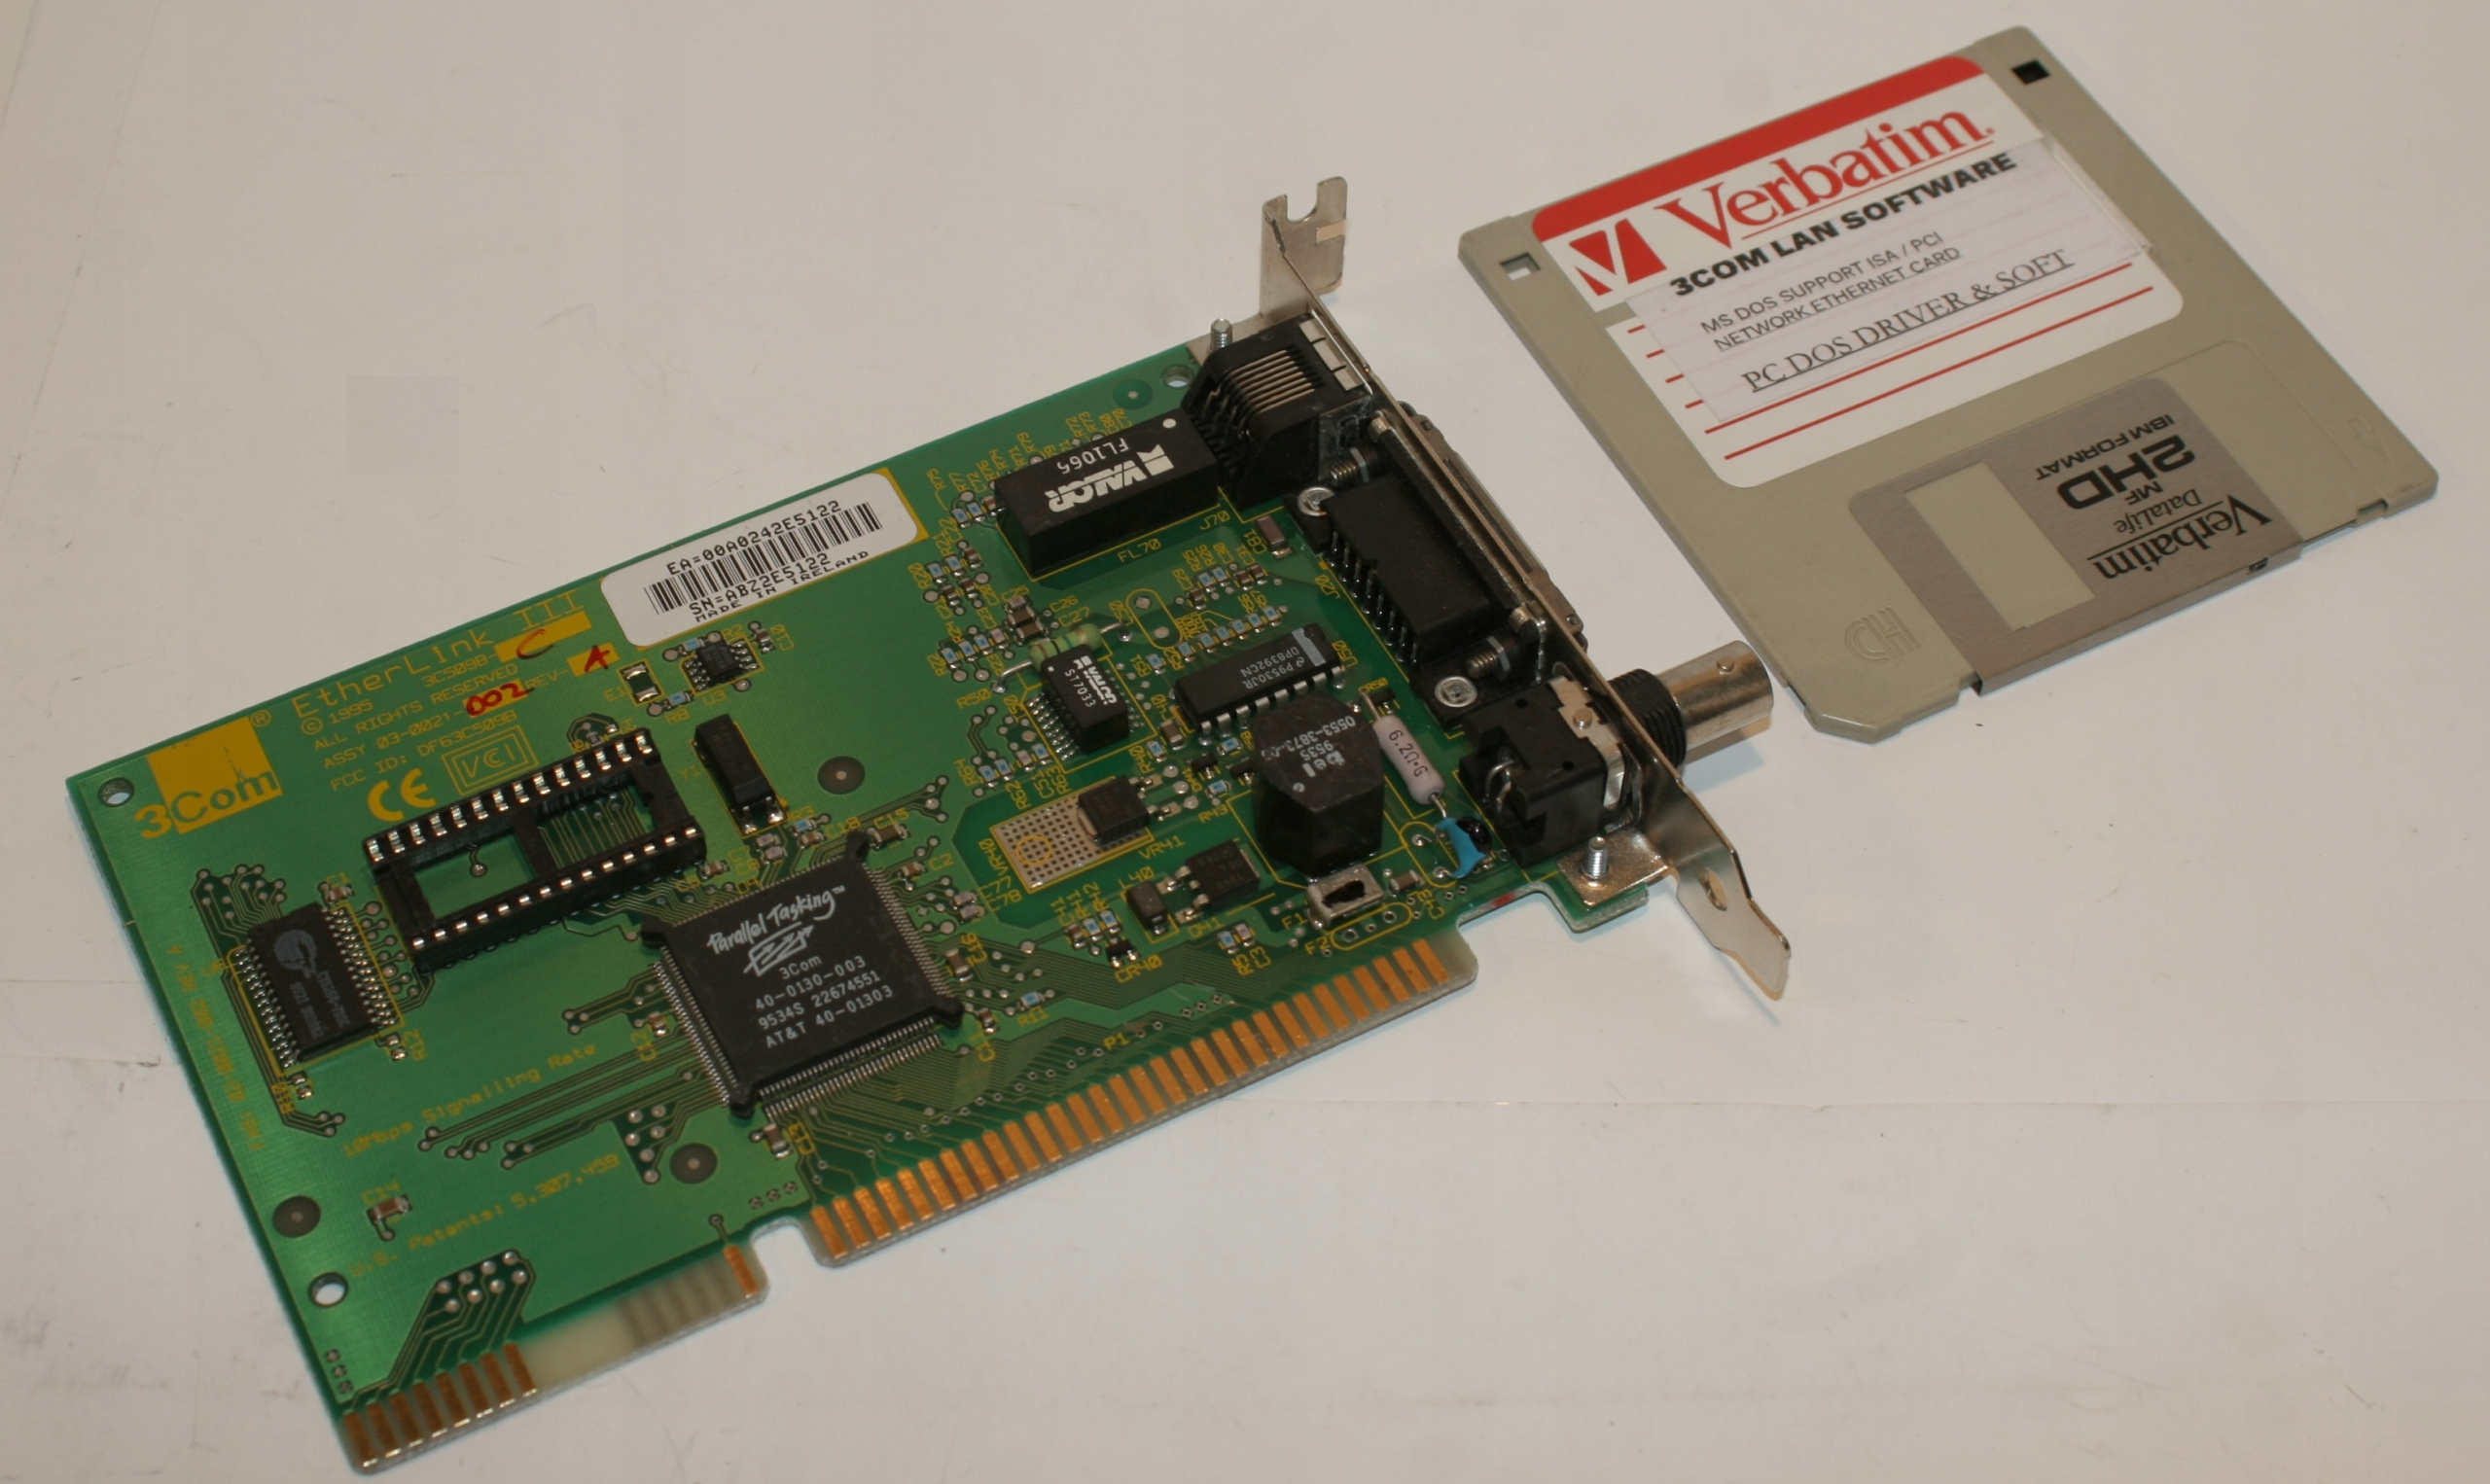 3COM 3C509B DOS DRIVER FOR PC